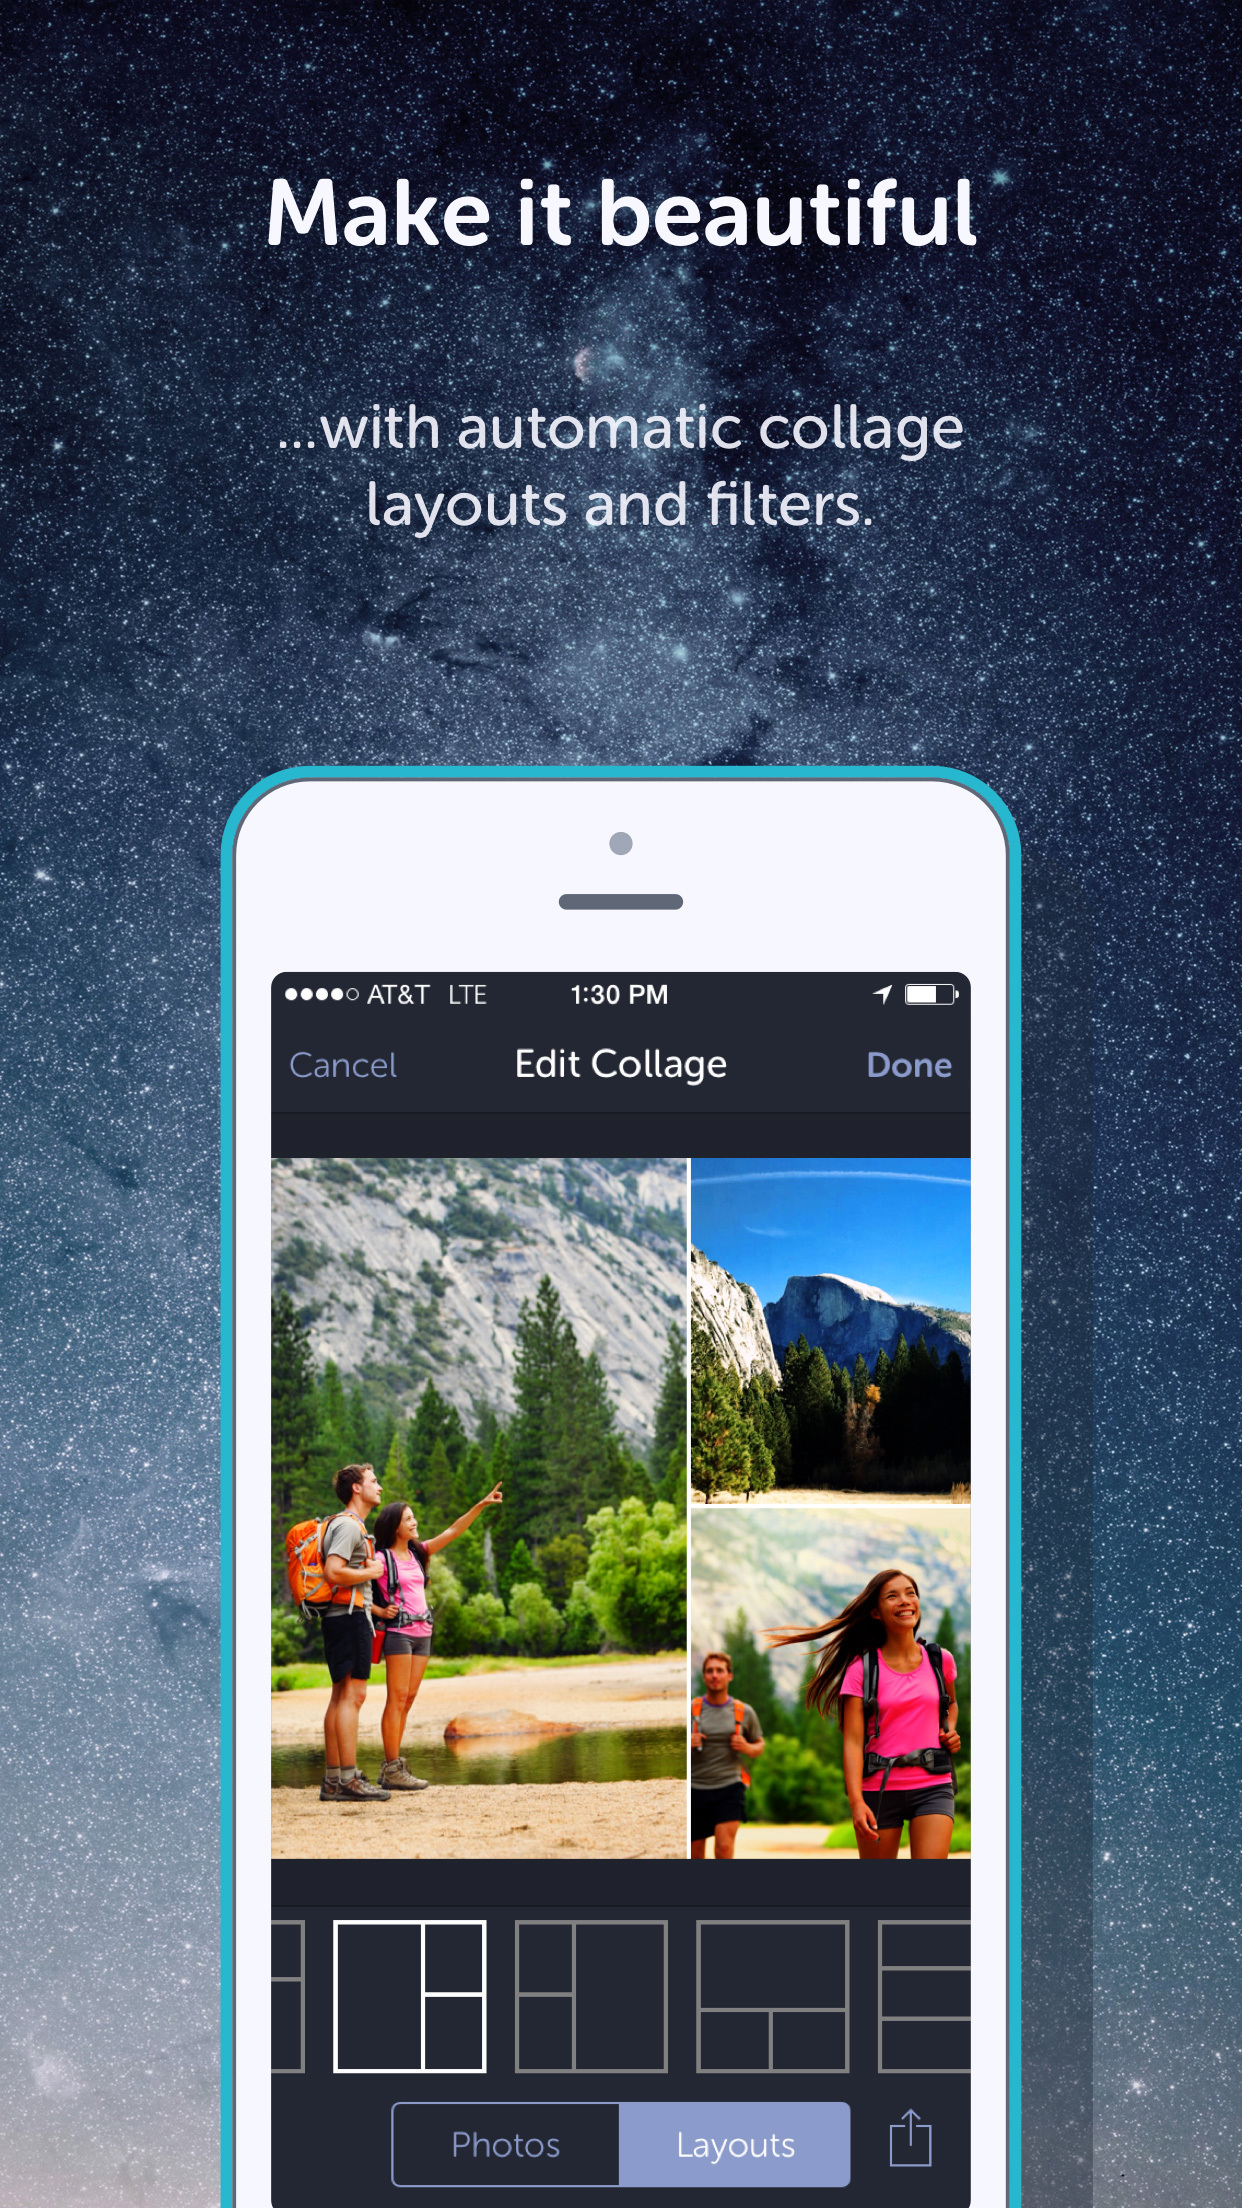 Heyday - The Automatic Photo Journal: Transform Your Camera Roll into a Collection of Memories